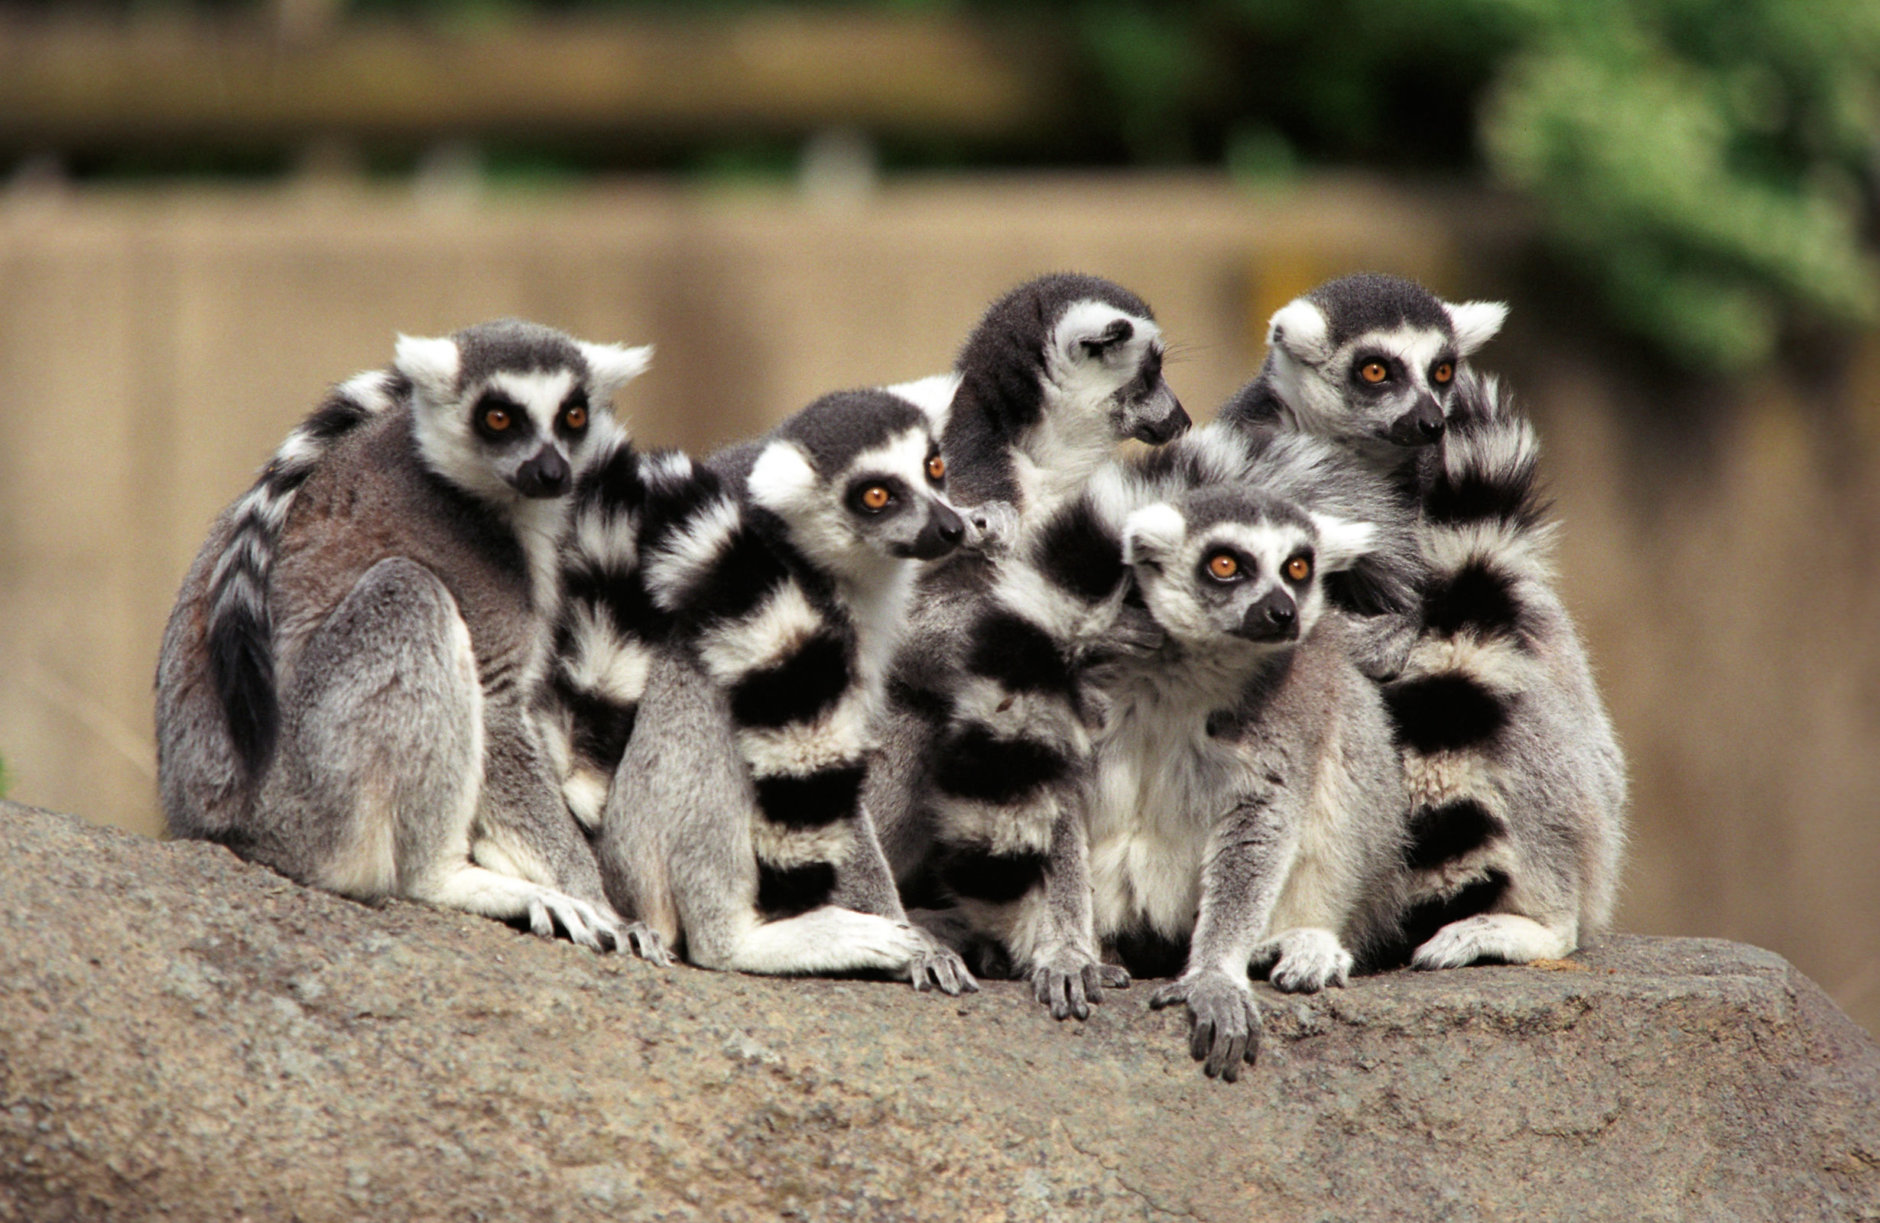 A pack of ring-tailed lemurs huddles together at the Cincinnati Zoo.